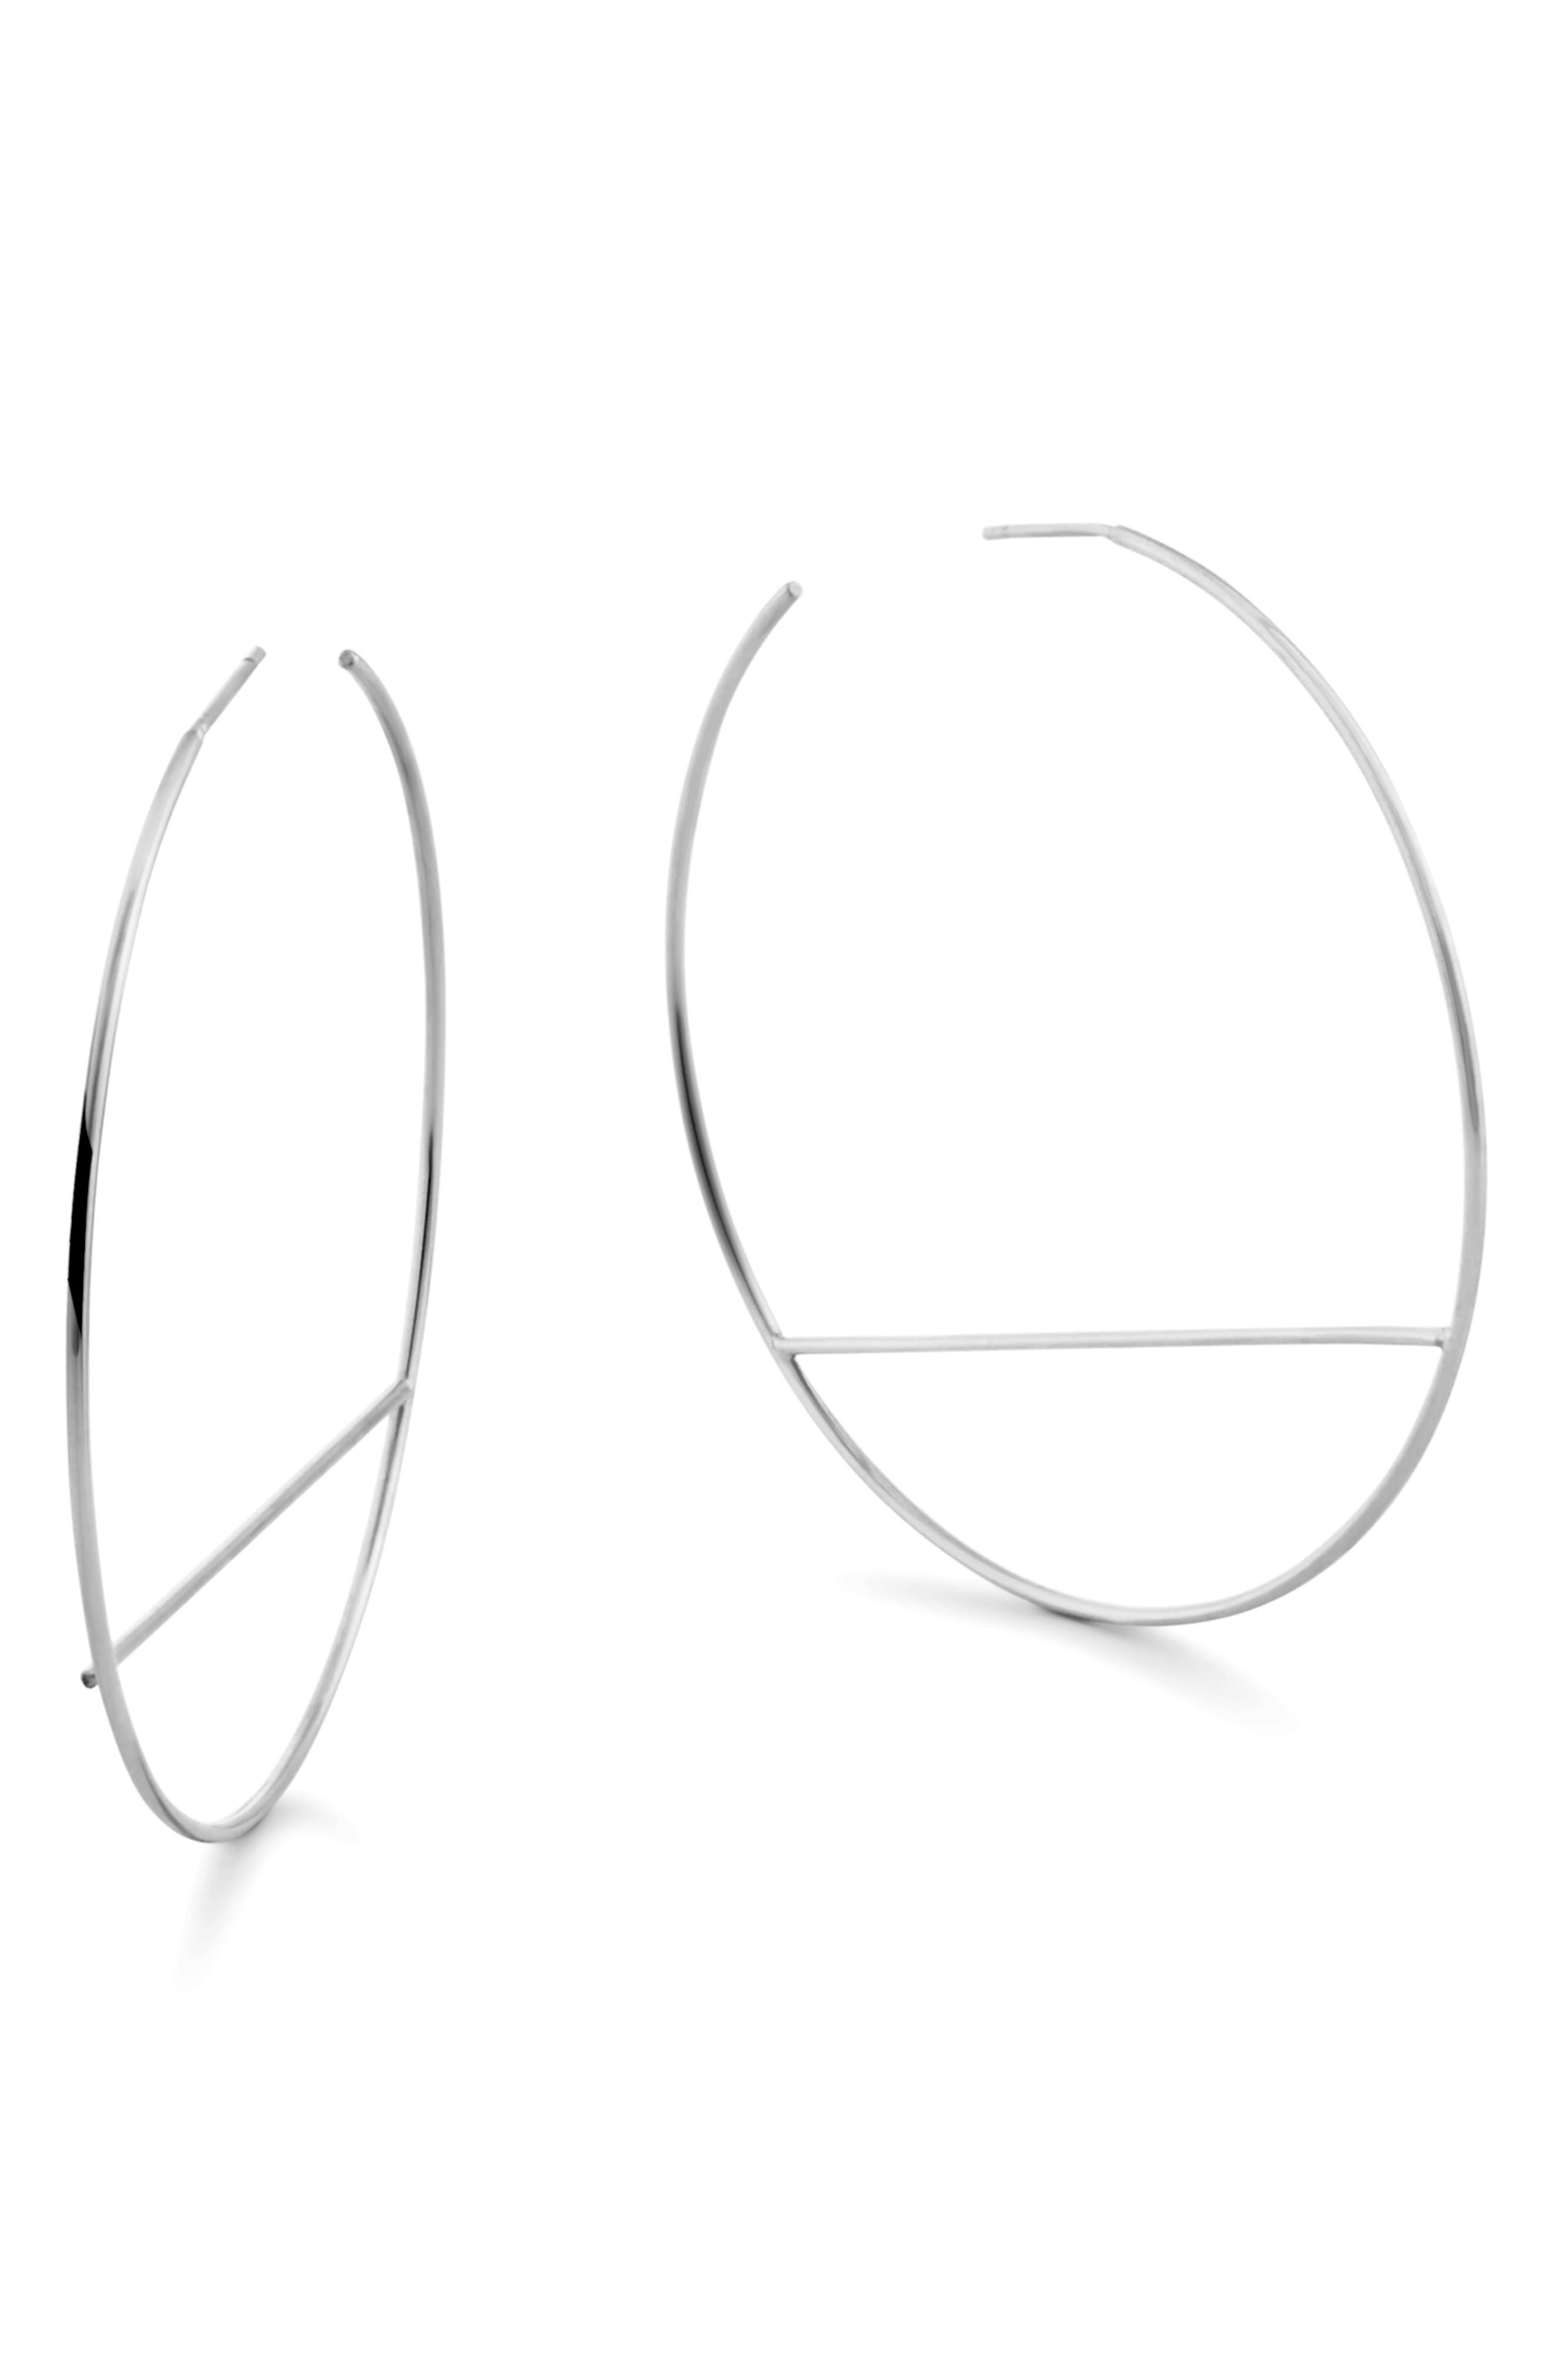 LANA JEWELRY,                             Wire Eclipse Hoop Earrings,                             Main thumbnail 1, color,                             WHITE GOLD